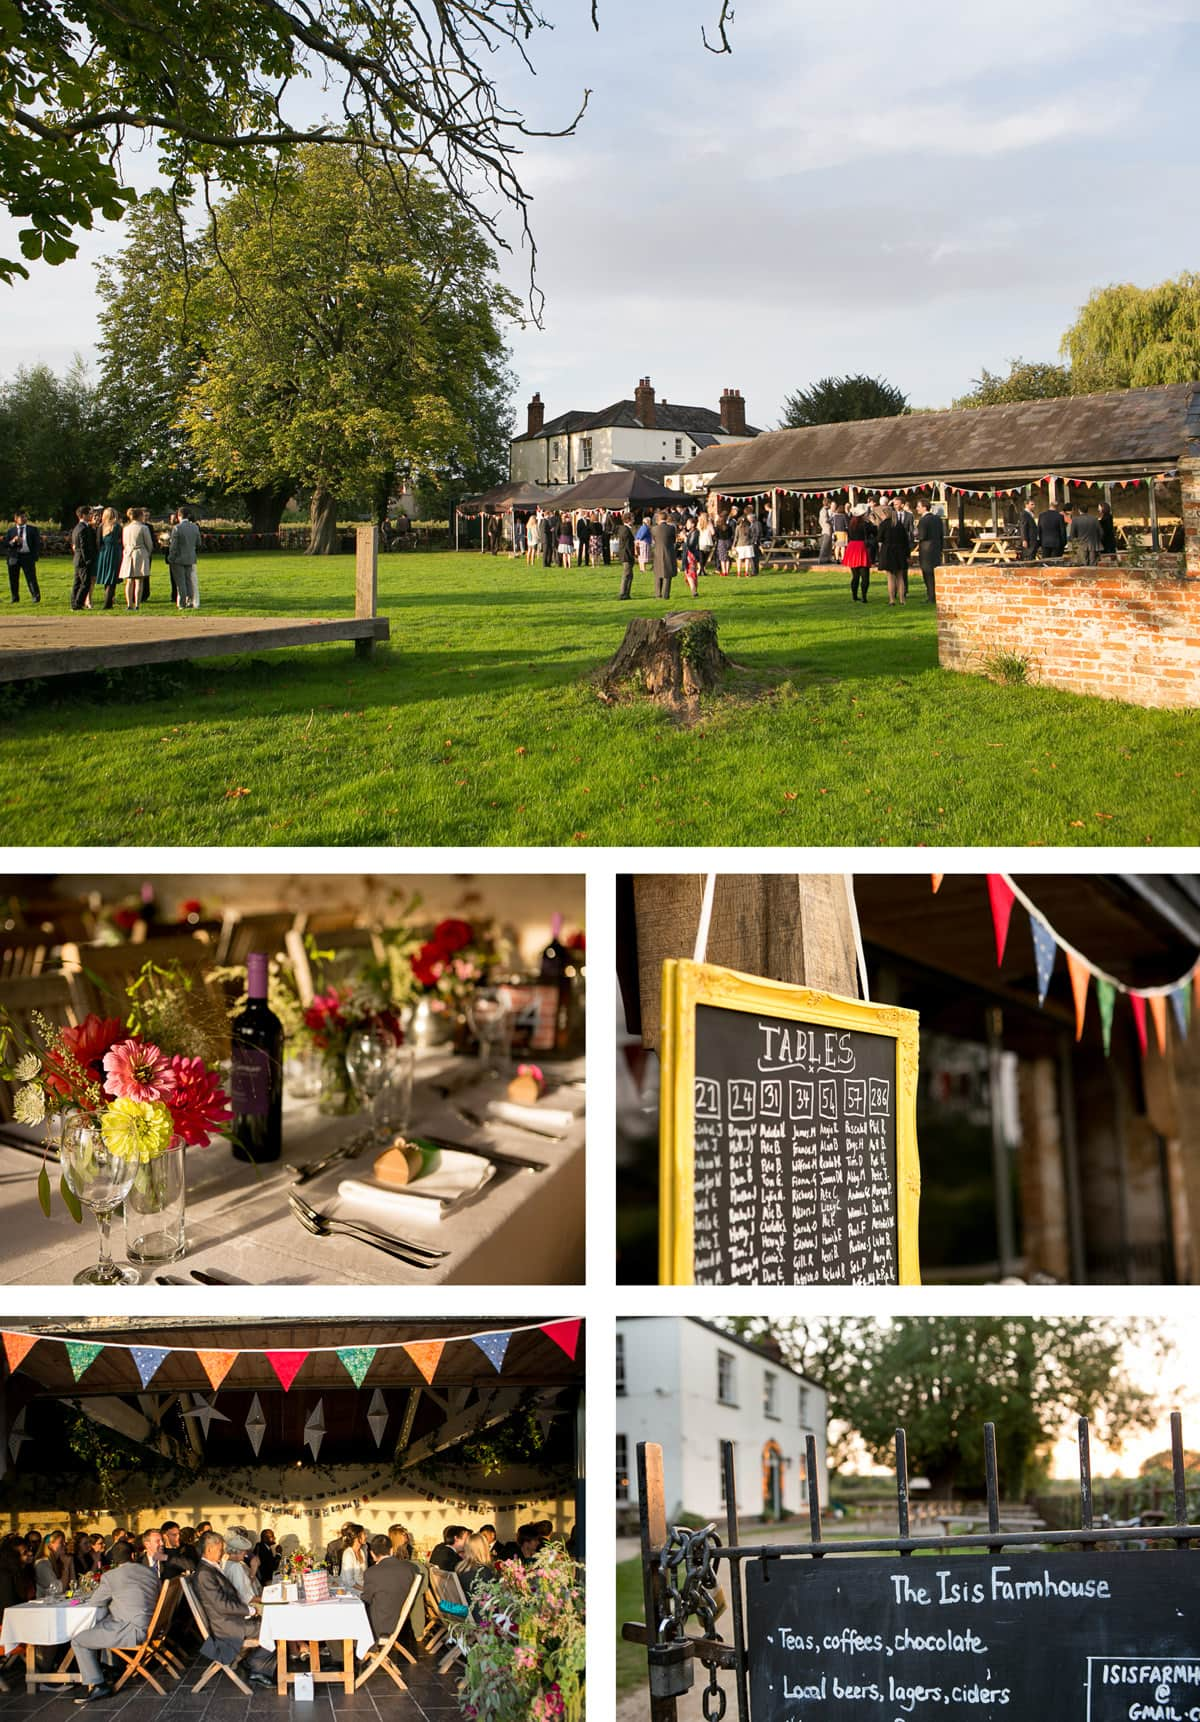 Collage of images showing a wedding at The Isis Farmhouse pub in Oxford